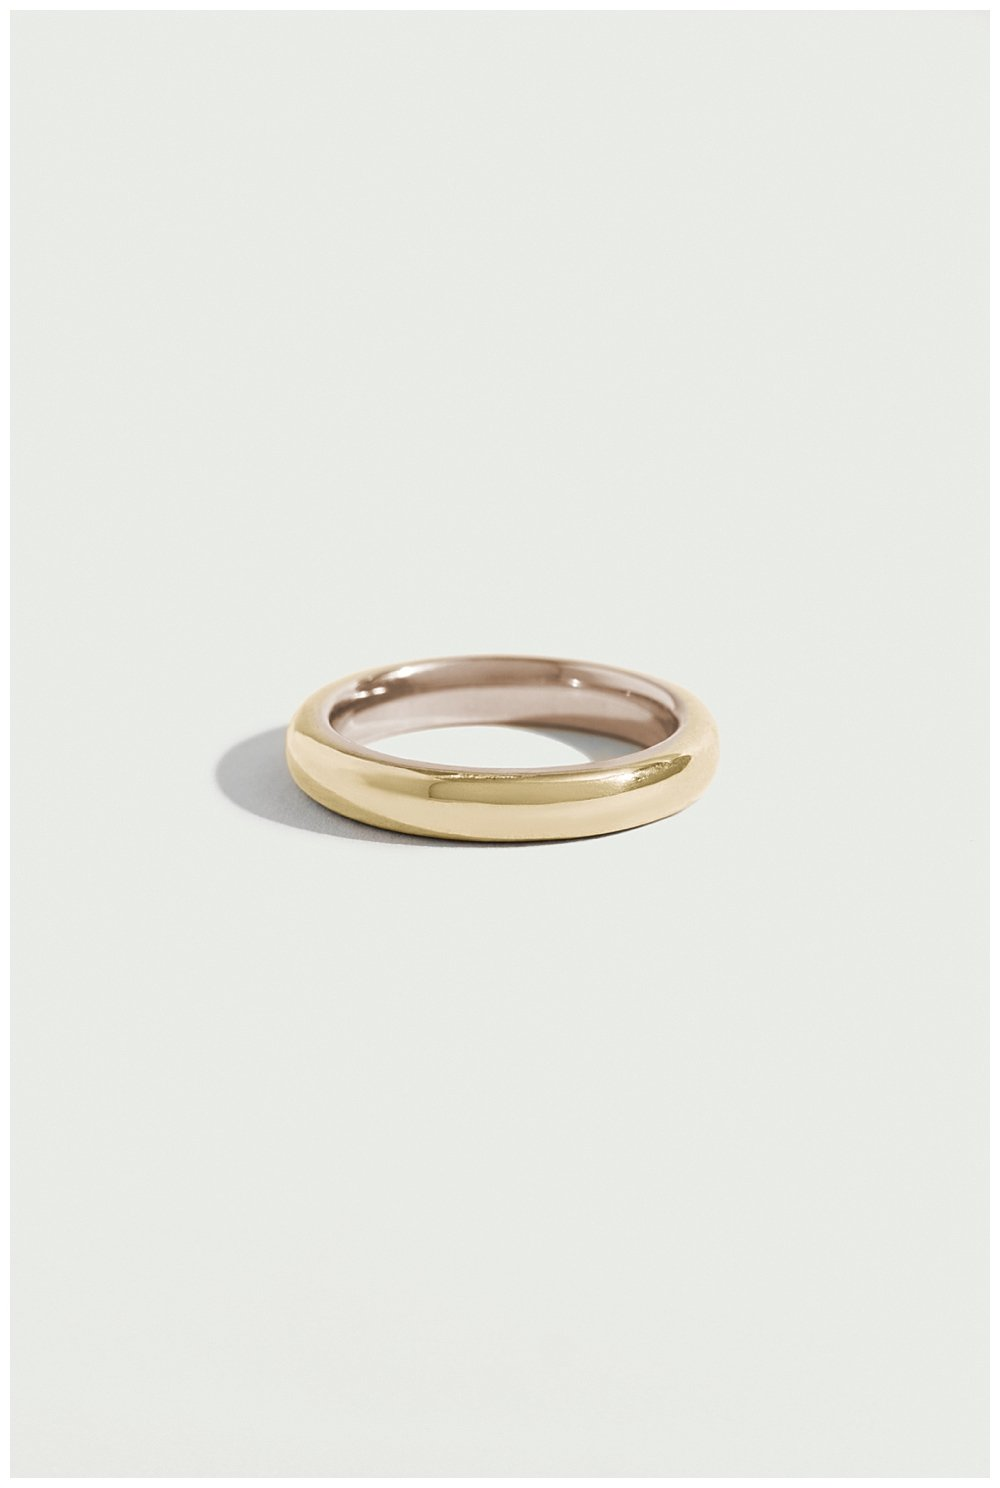 unisex-engagement-rings-8